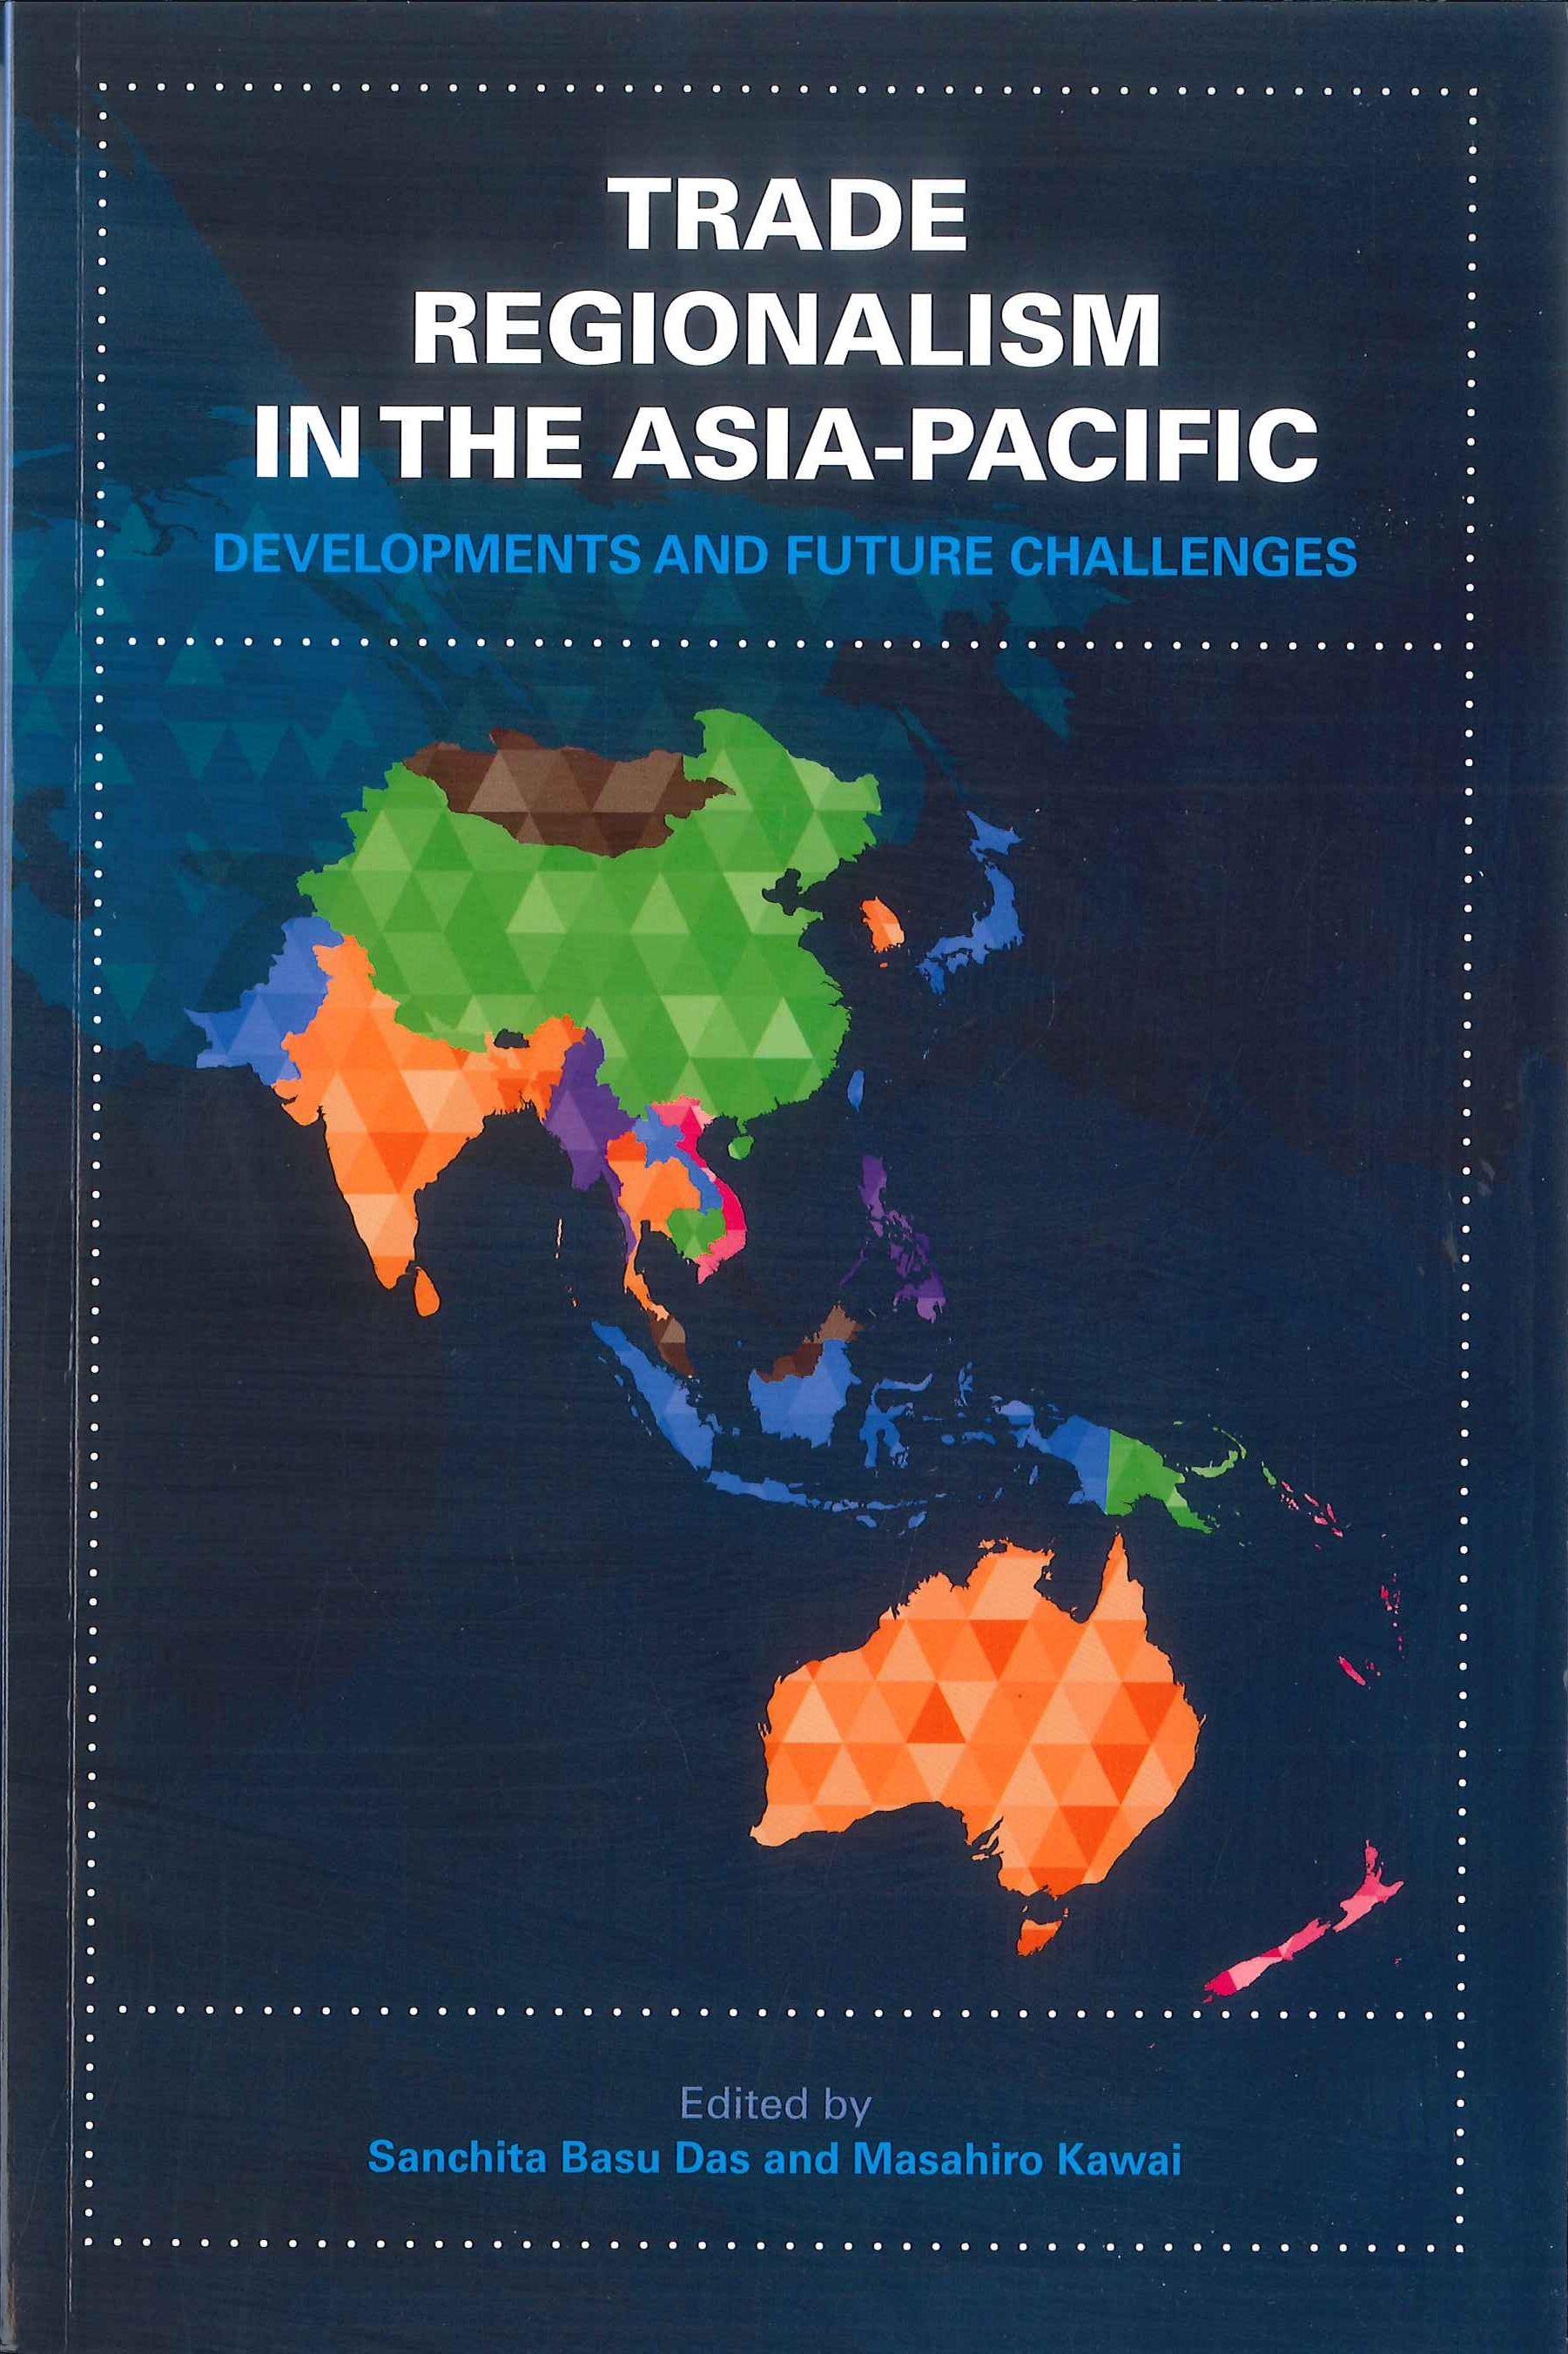 Trade regionalism in the Asia-Pacific:developments and future challenges